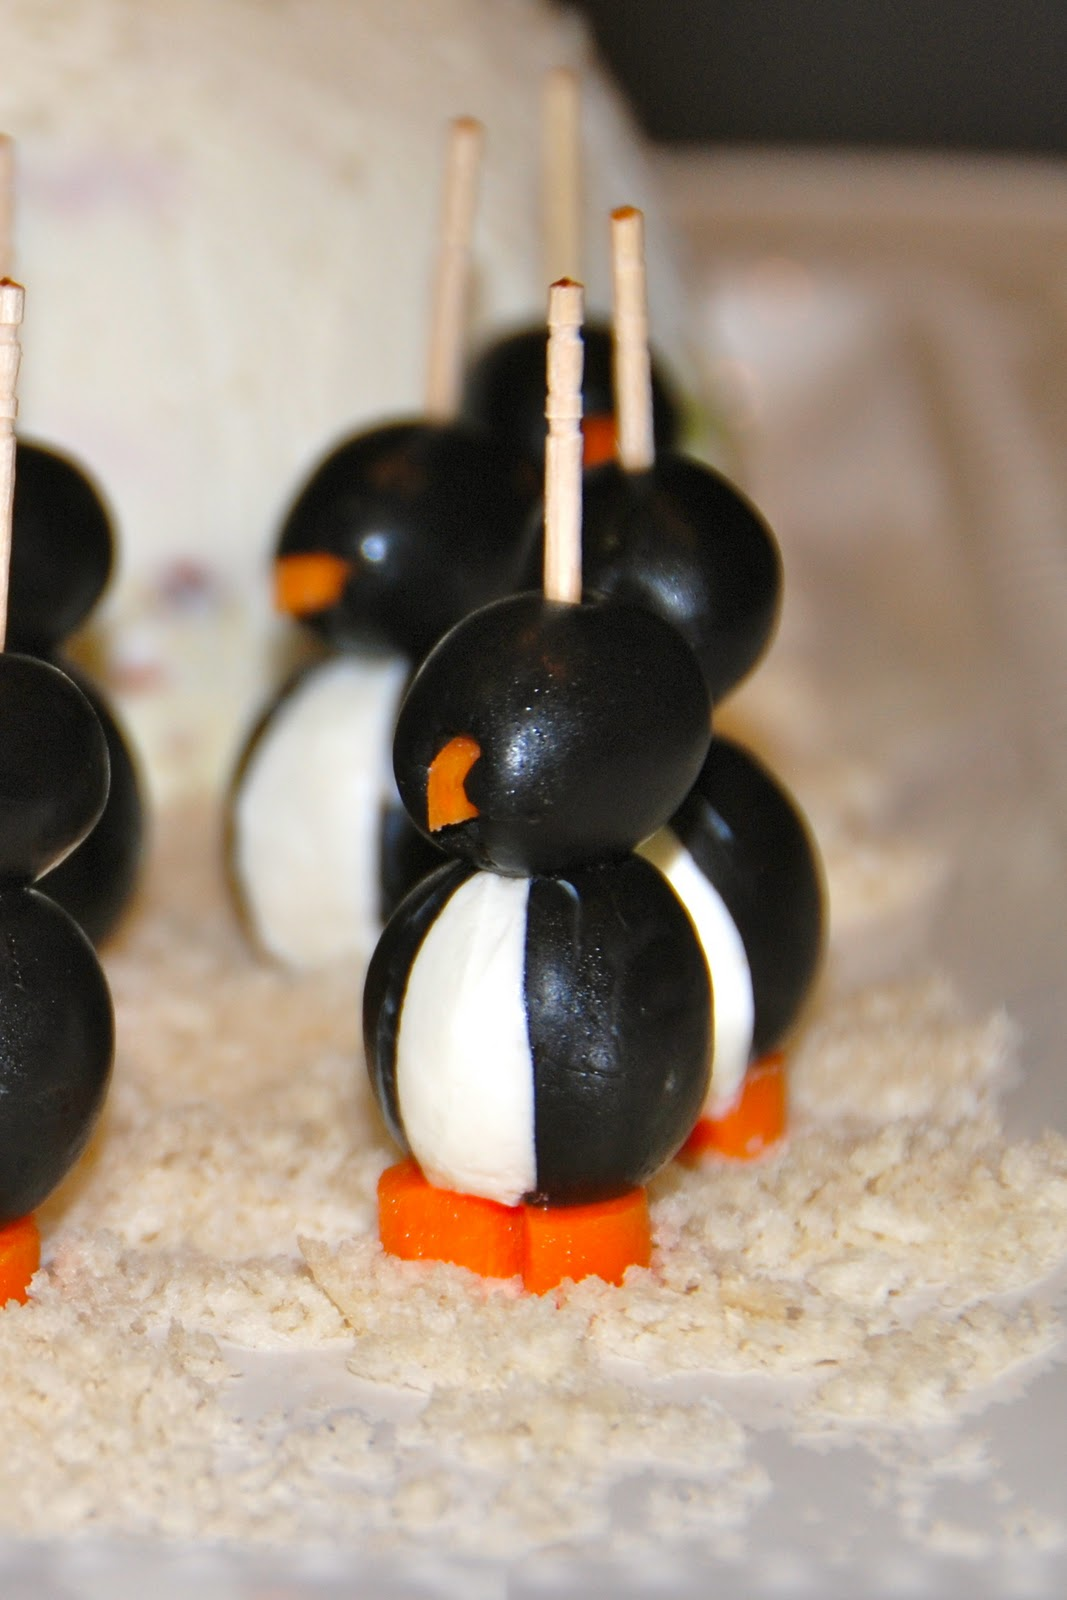 Copper Lantern Cooking: CREAM CHEESE PENGUIN APPETIZER